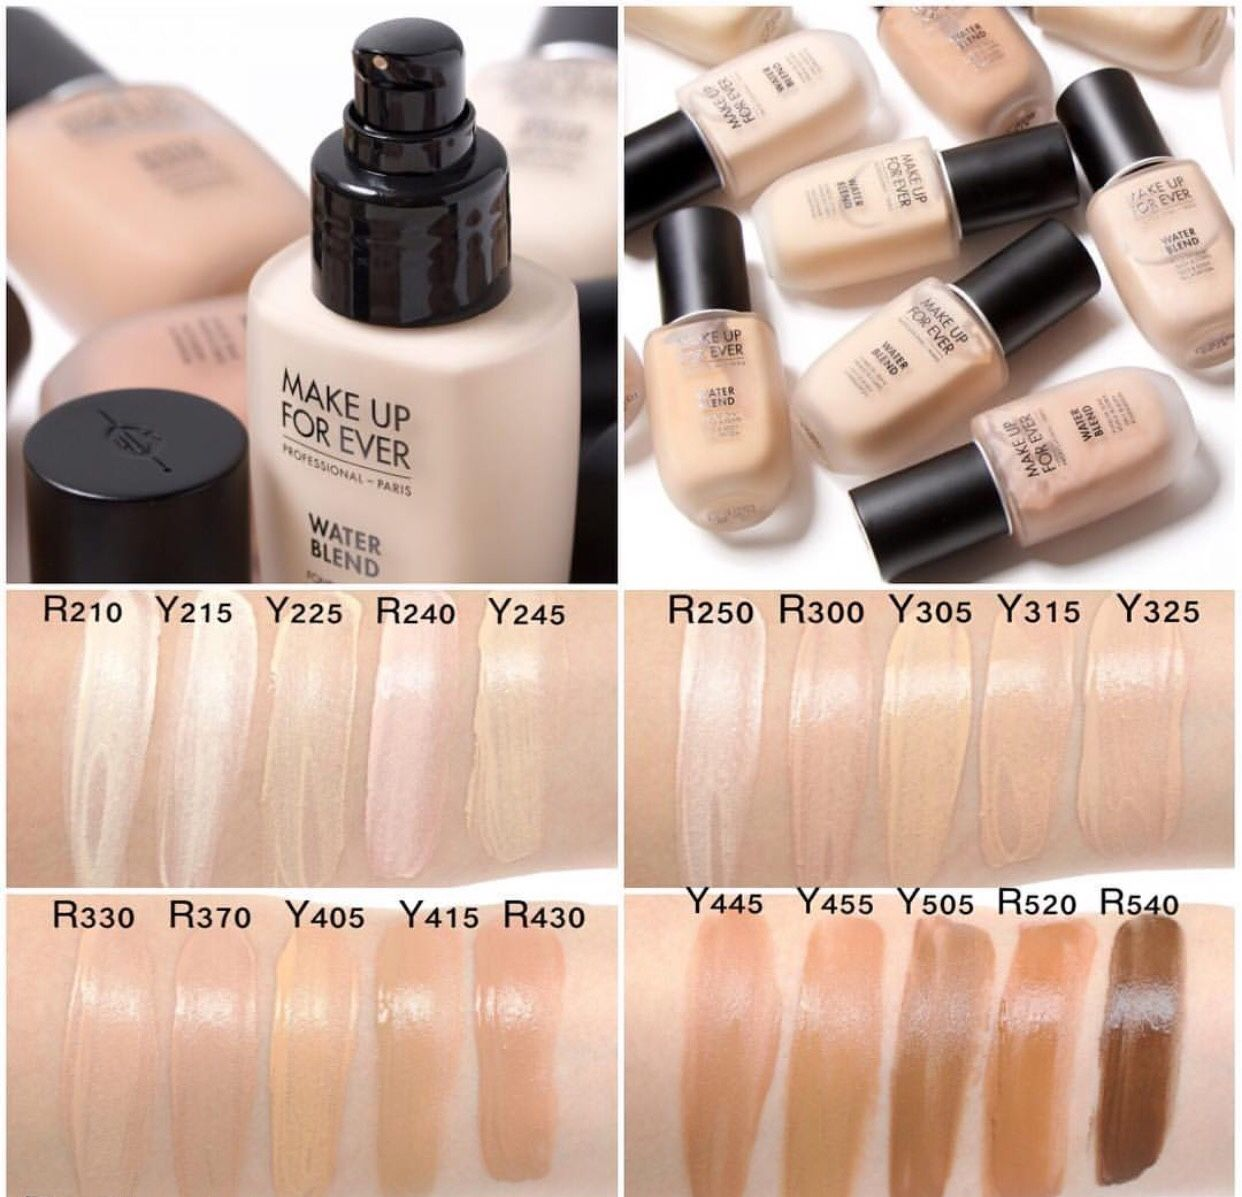 SWATCHES of the NEW Makeup Forever Water Blend face and